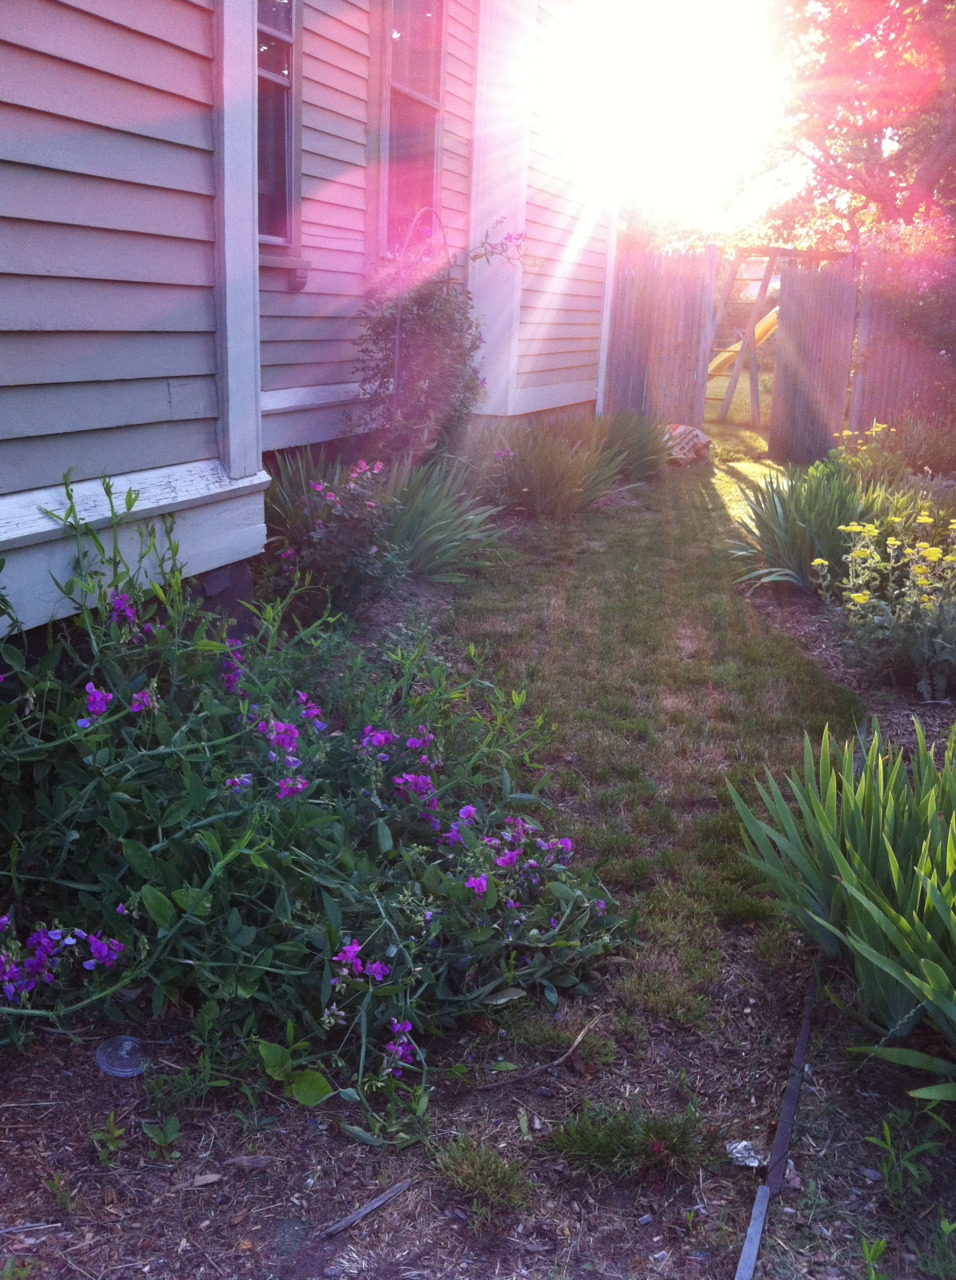 Side garden - leading to the back yard. Sweet pea vine (needs trellis!); Clematis, knockout roses, bearded irises along left side. Along the right: more irises, yarrow, climbing sweetheart rose on fence.